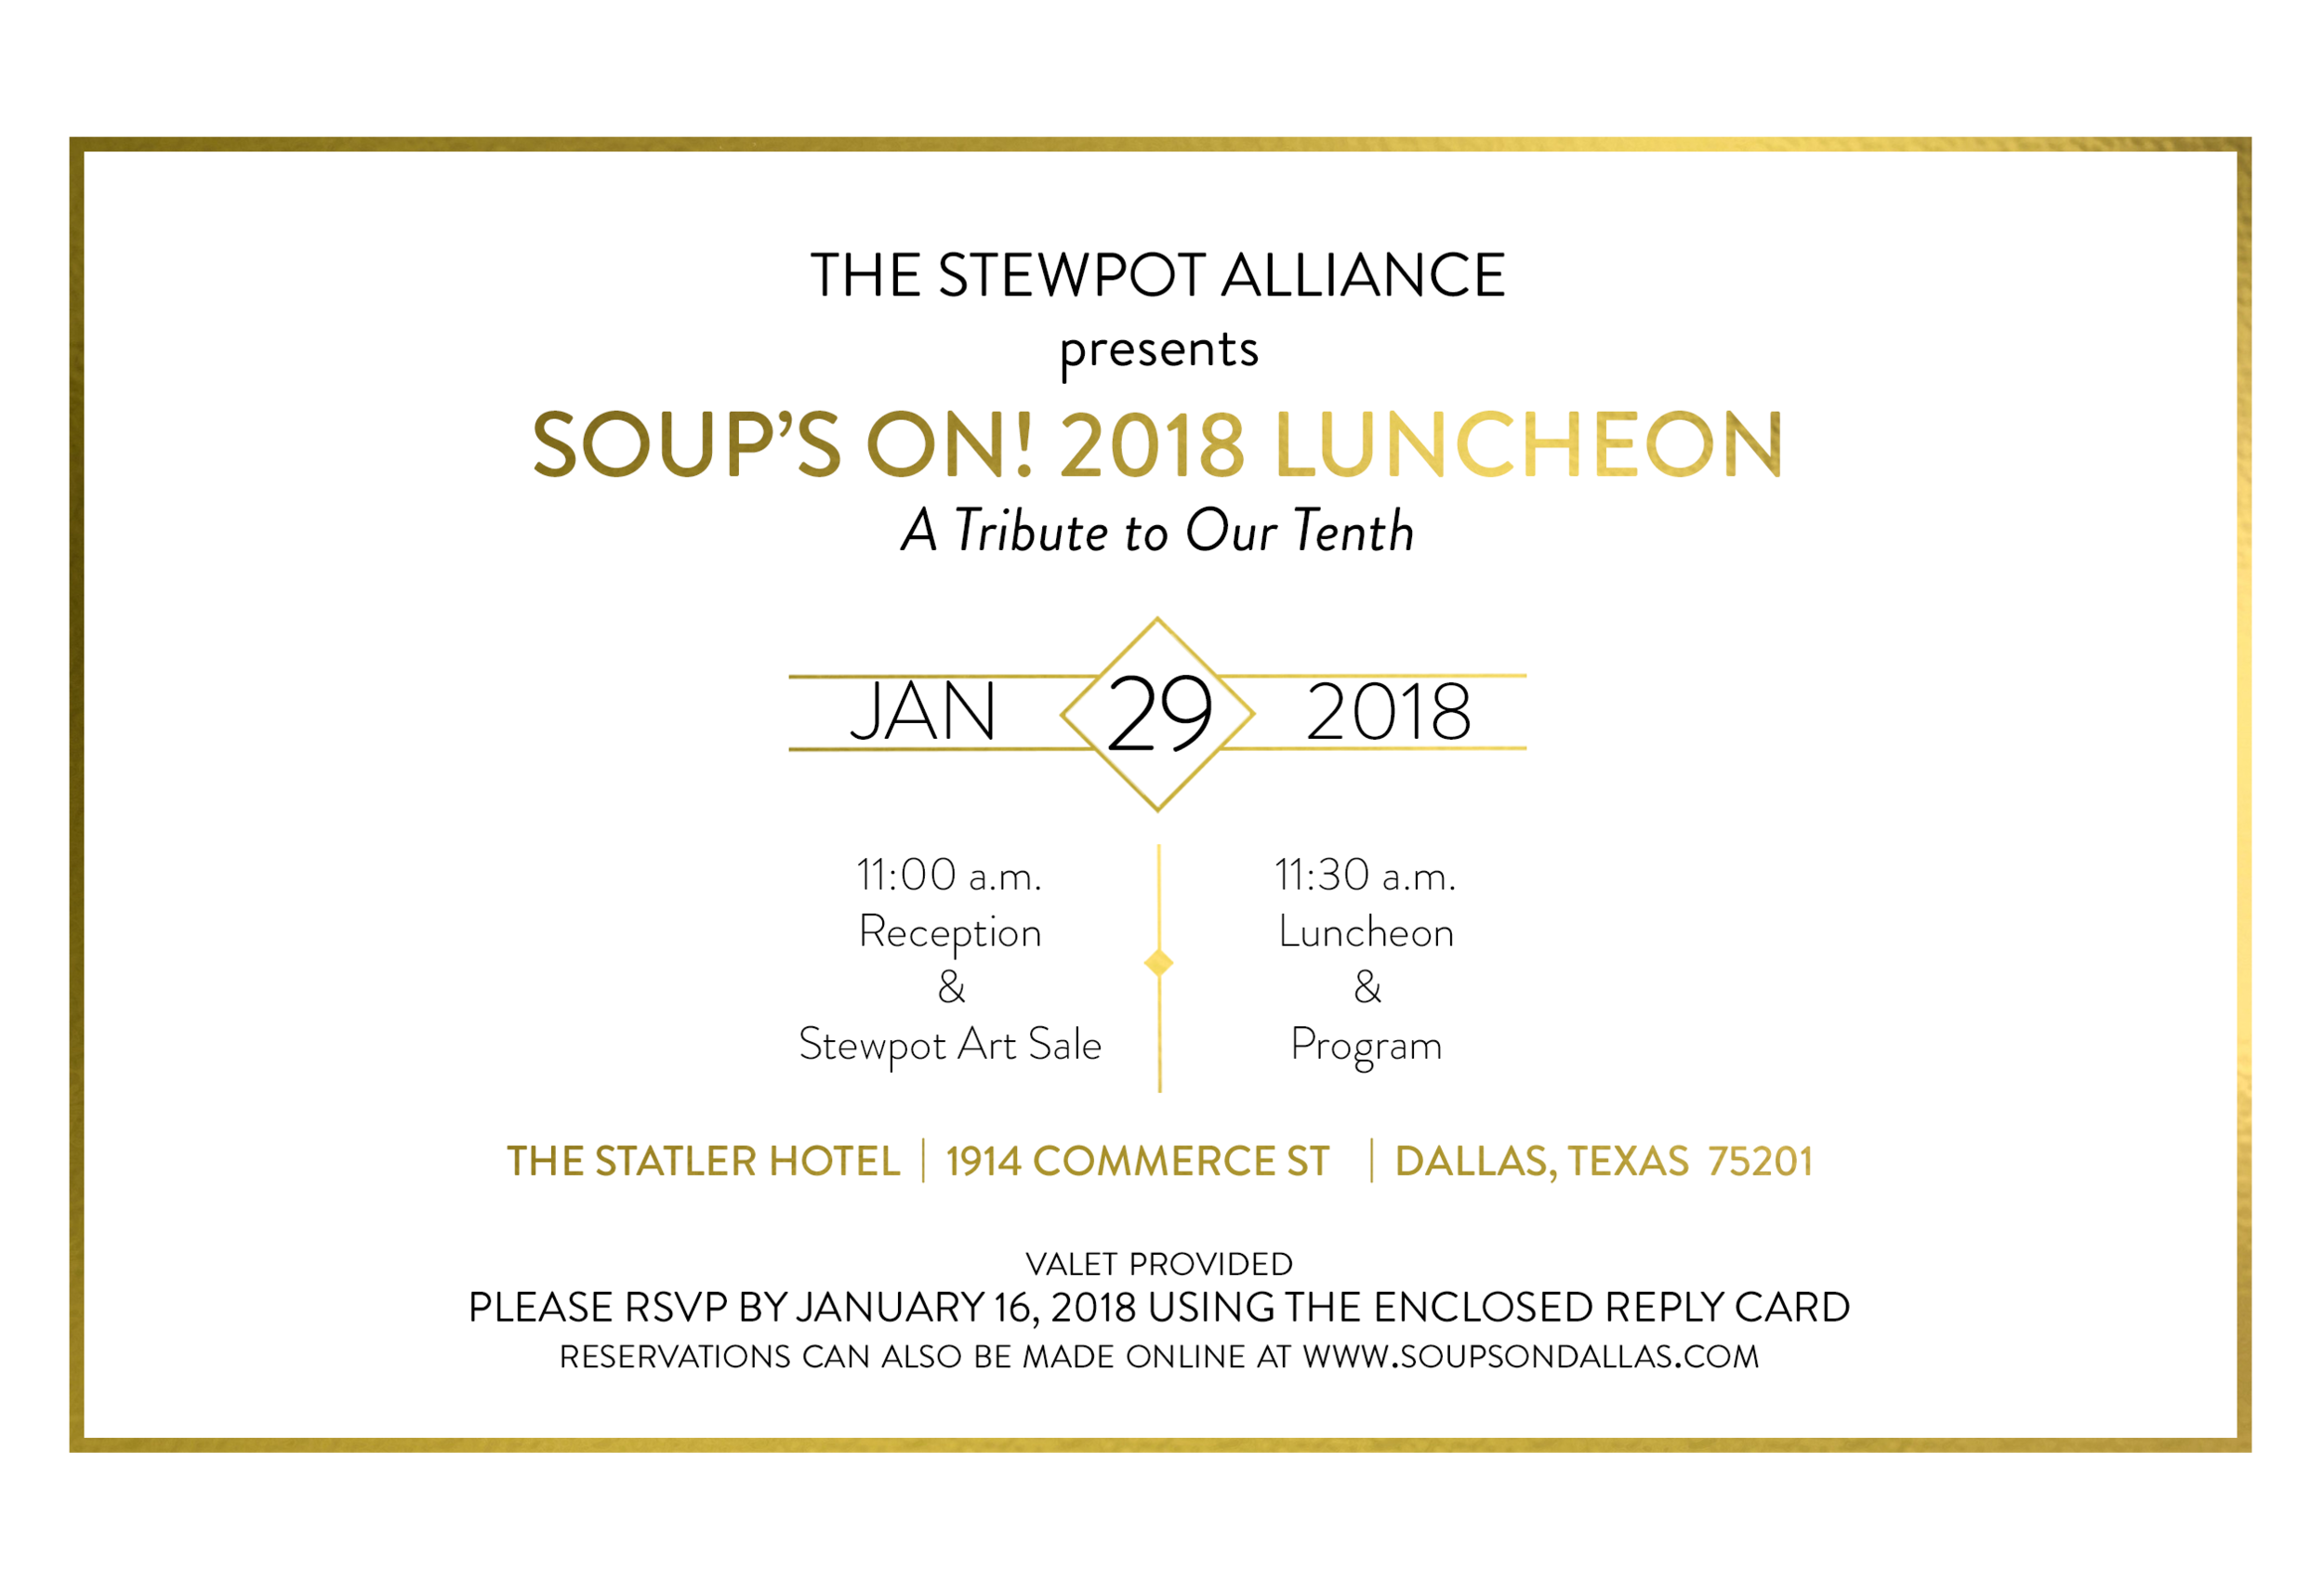 Soup's On 2018 event info.png